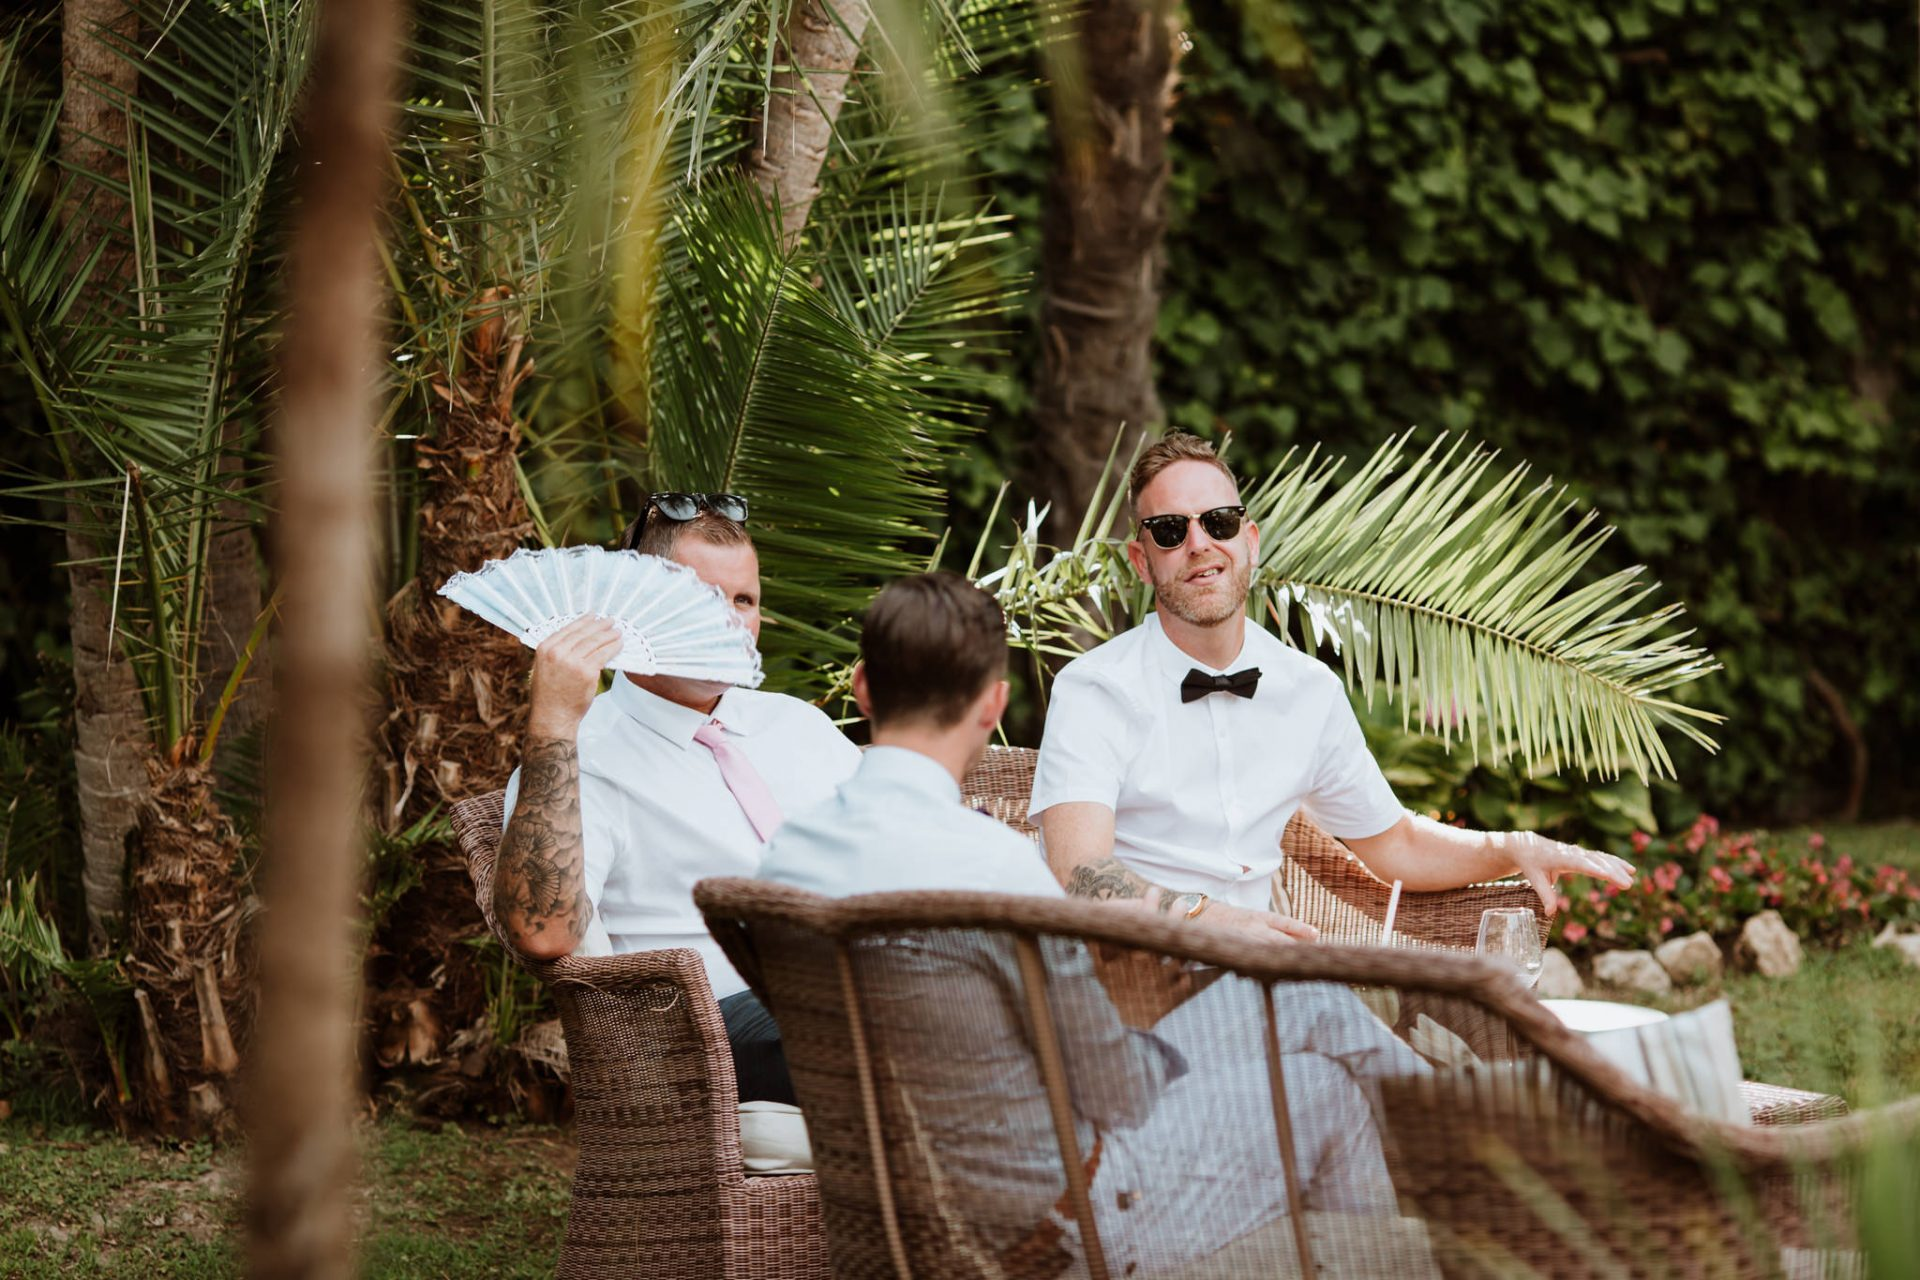 guests relaxing candid photo hotel mediterraneo sorrento